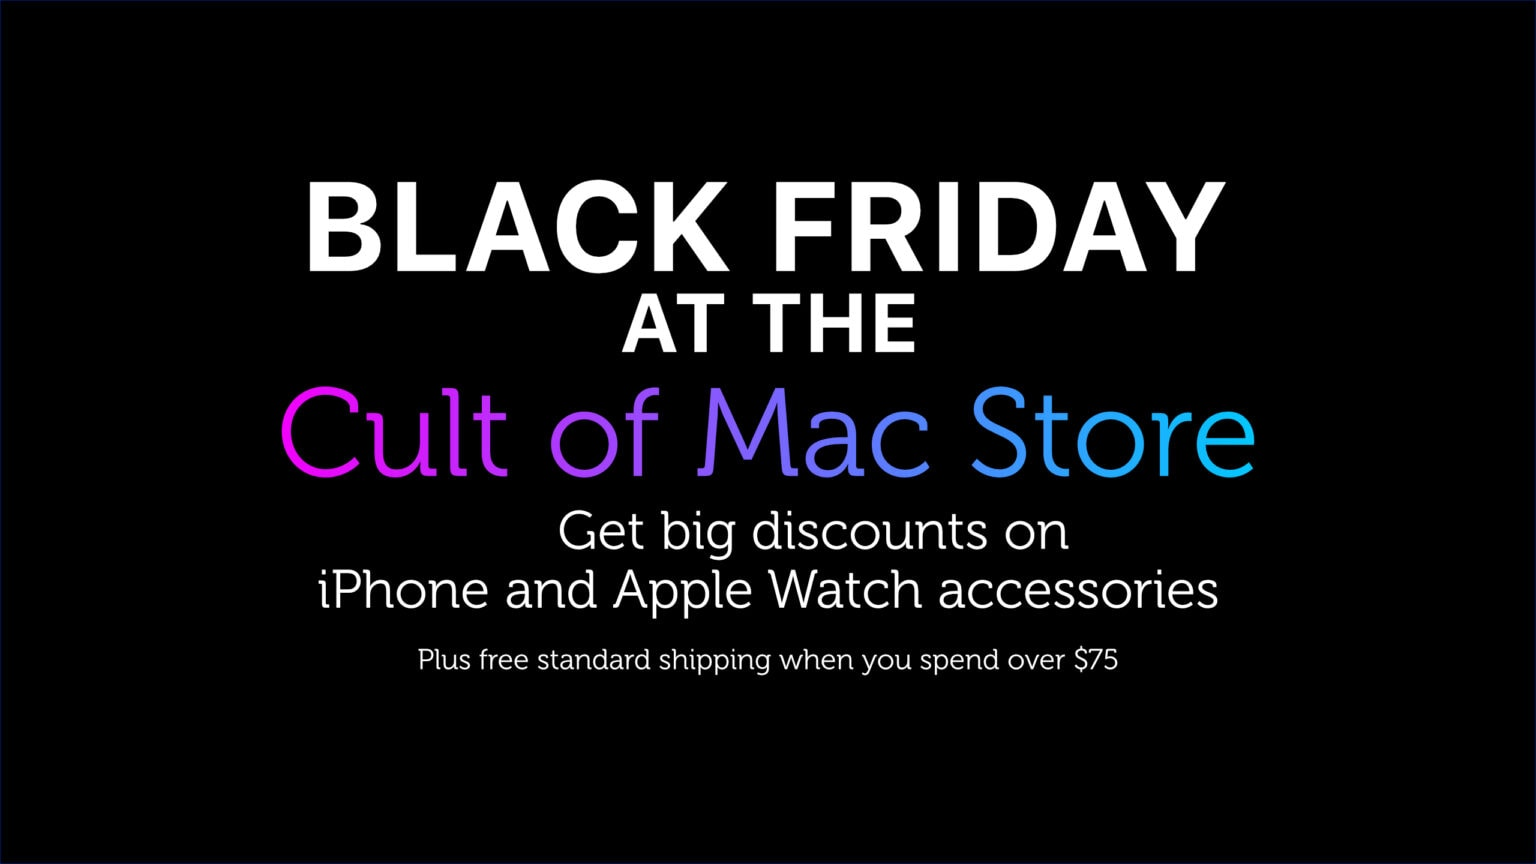 Cult of Mac Store Black Friday sale